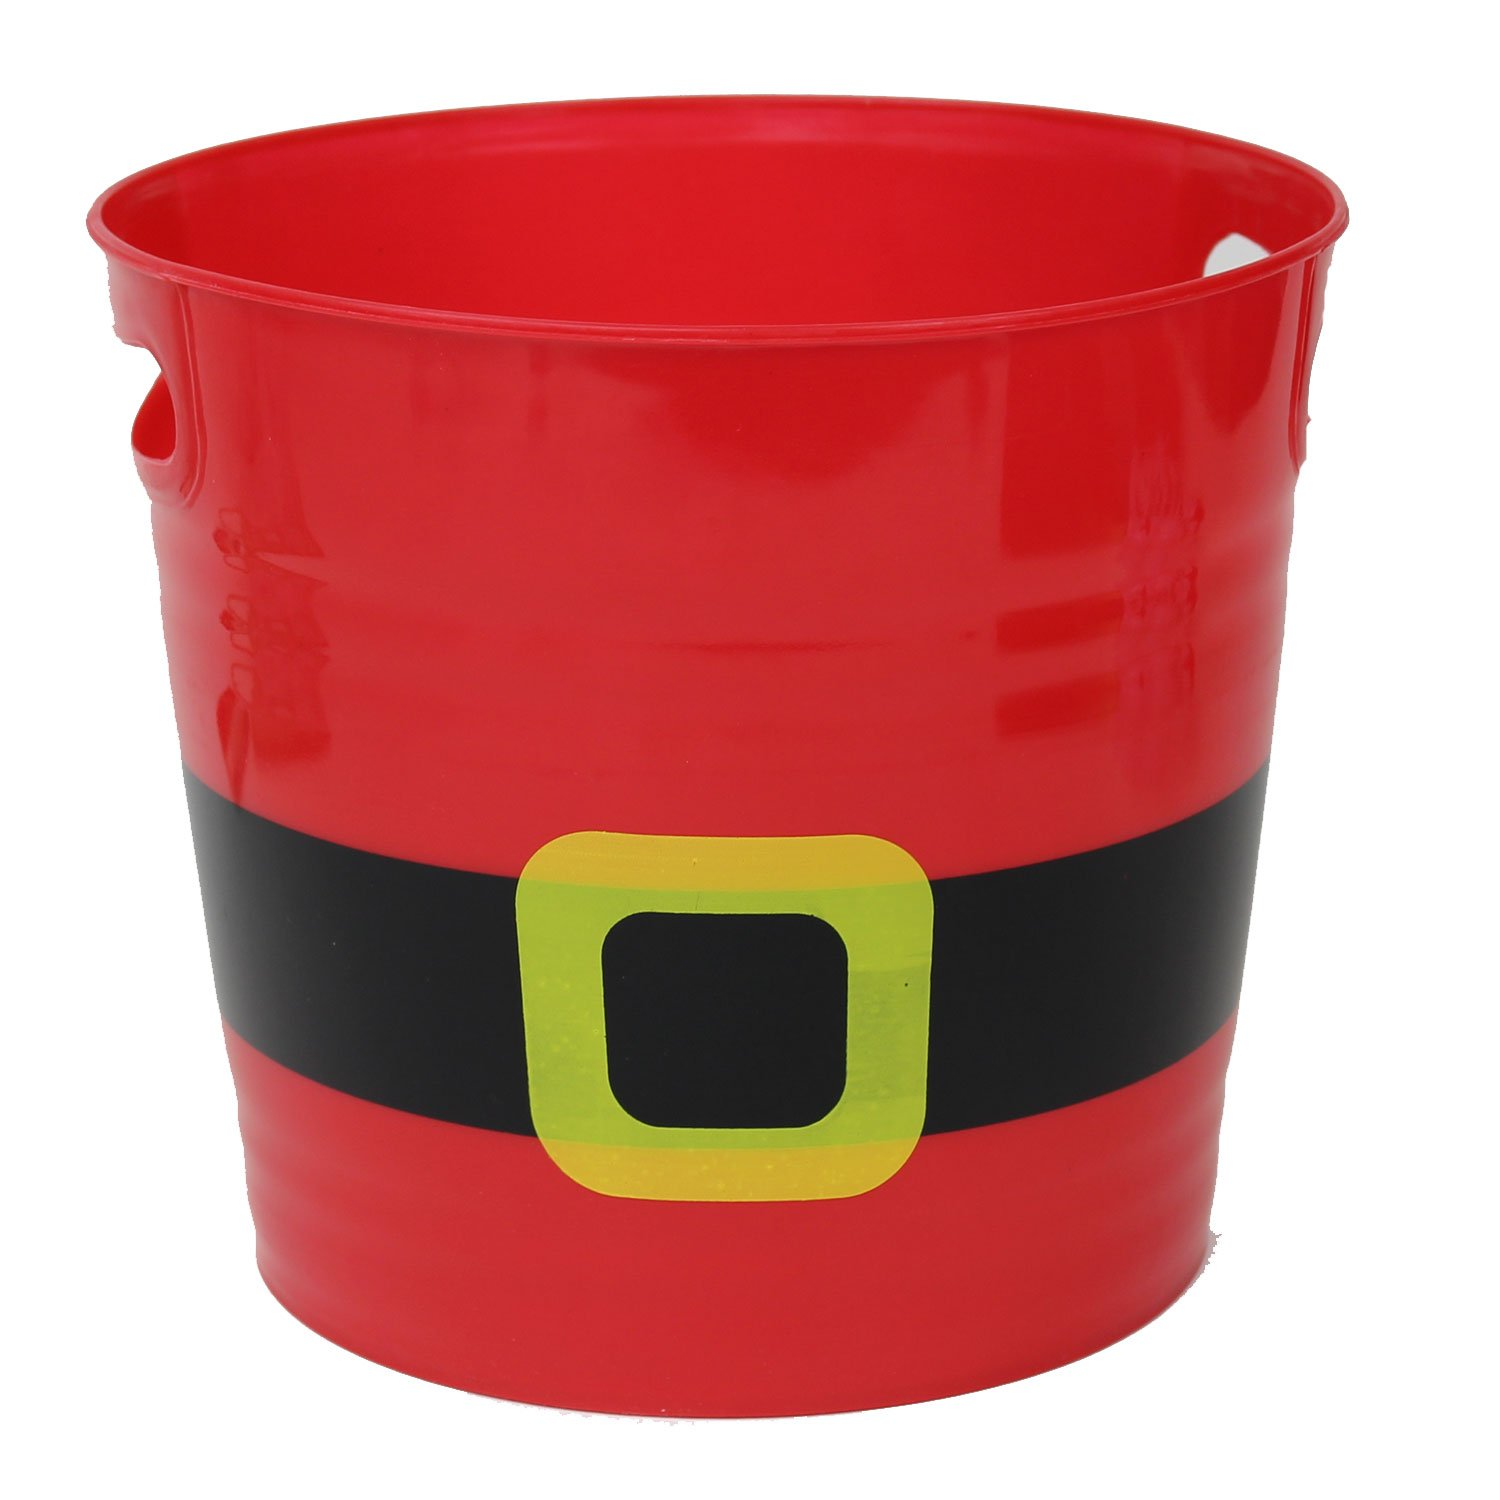 Red Santa Suit Plastic Ice Bucket with Belt and Handles, Set of 2 LNK XM21449